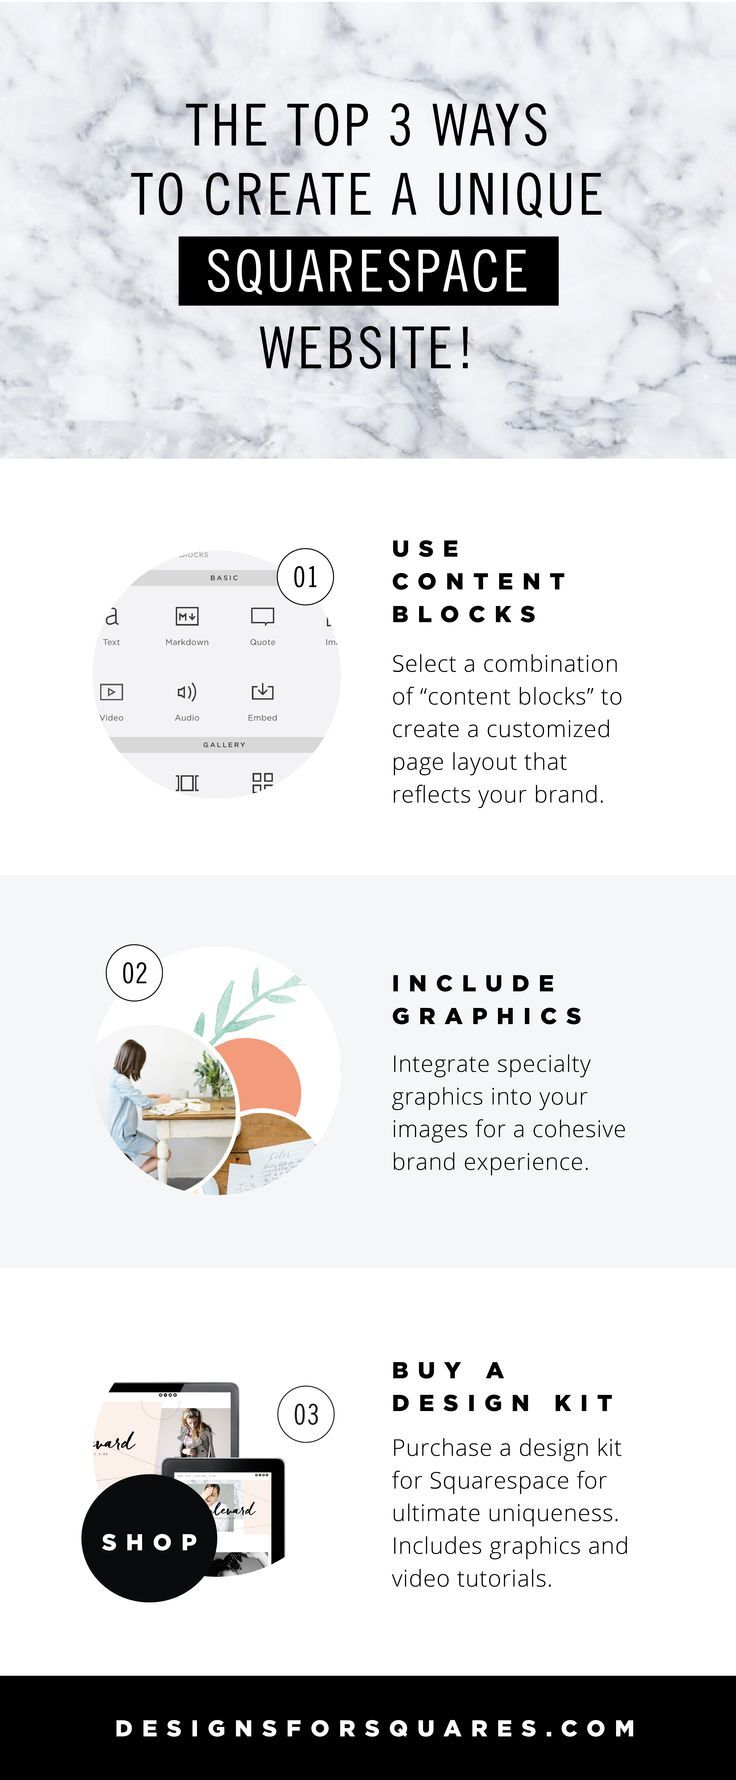 Beautiful pin design... Square Space customization tips (and a clever advertisement)